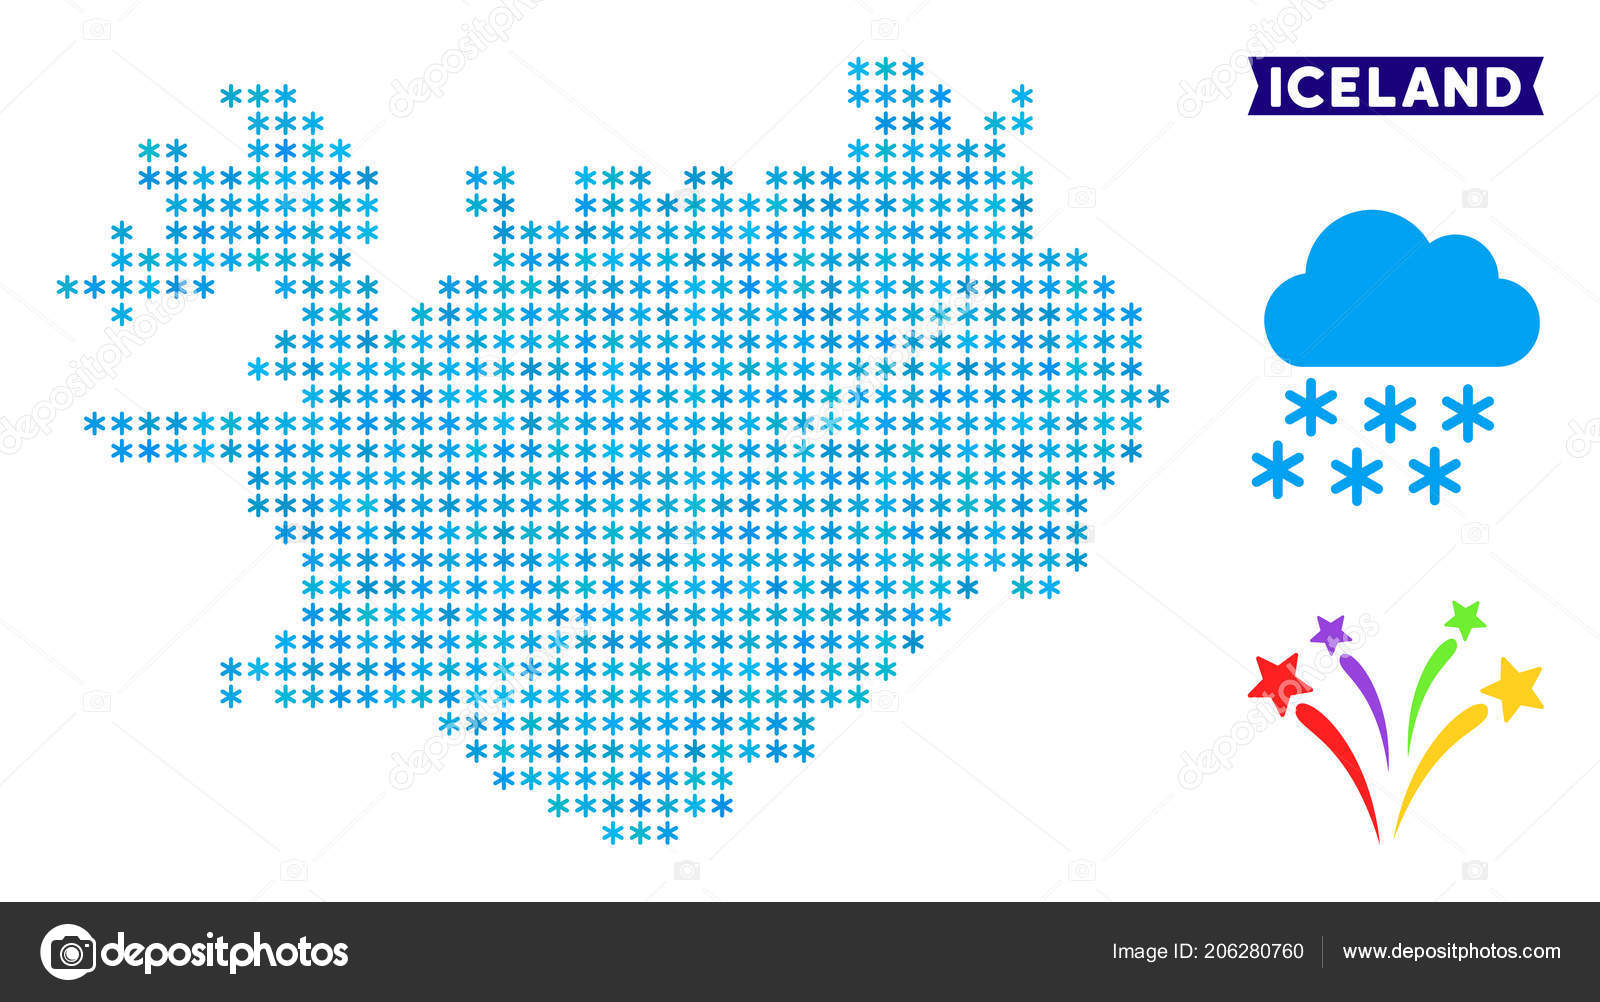 Icy Iceland Map — Stock Vector © ahasoft #206280760